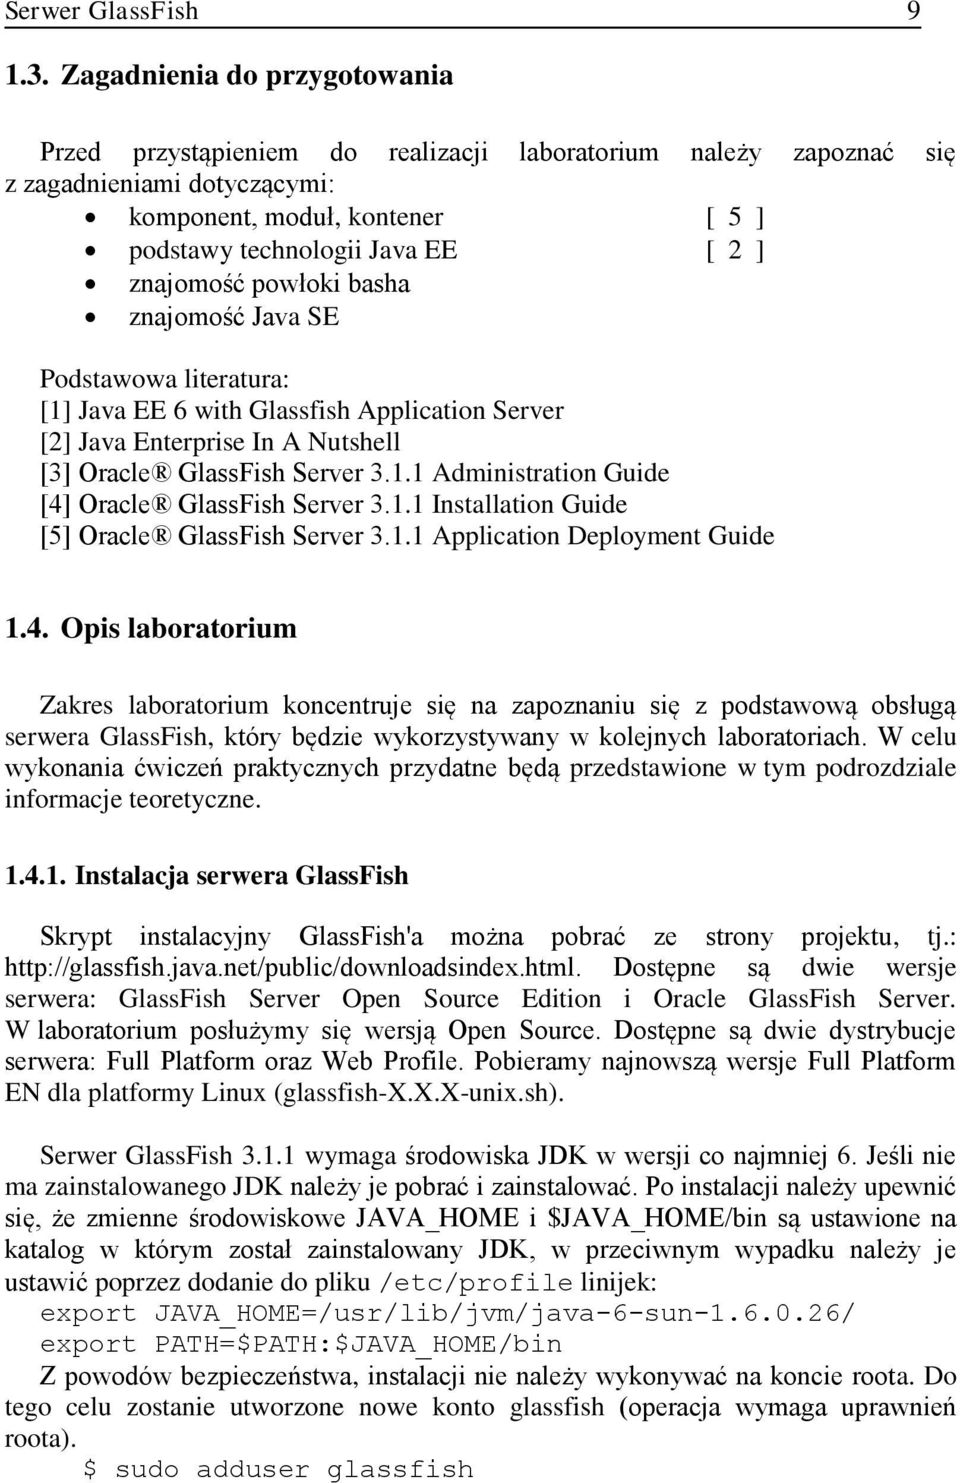 znajomość powłoki basha znajomość Java SE Podstawowa literatura: [1] Java EE 6 with Glassfish Application Server [2] Java Enterprise In A Nutshell [3] Oracle GlassFish Server 3.1.1 Administration Guide [4] Oracle GlassFish Server 3.